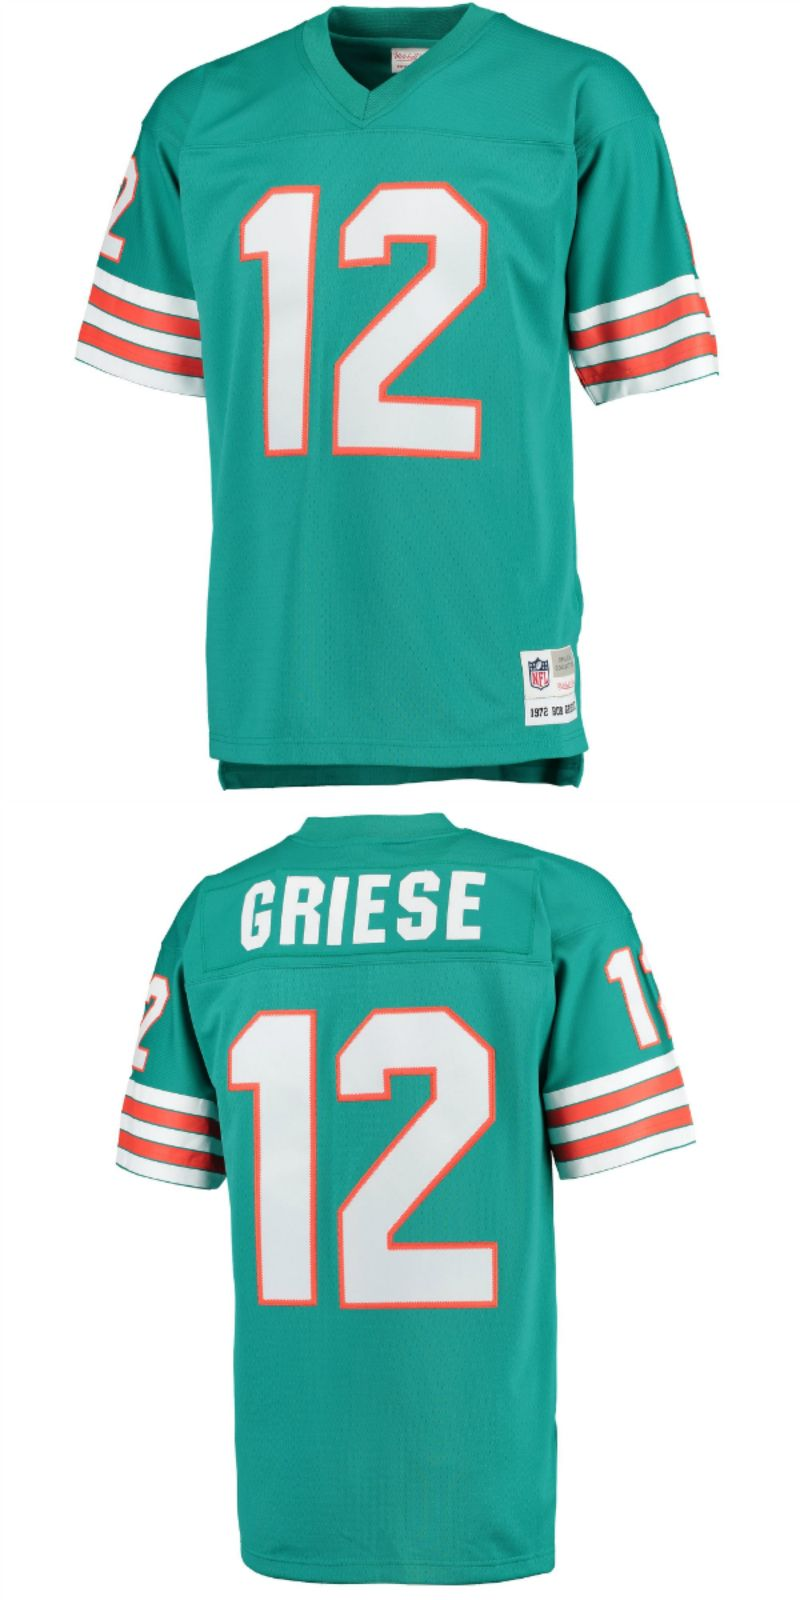 save off 32025 187e5 UP TO 70% OFF. Bob Griese Miami Dolphins Mitchell & Ness ...